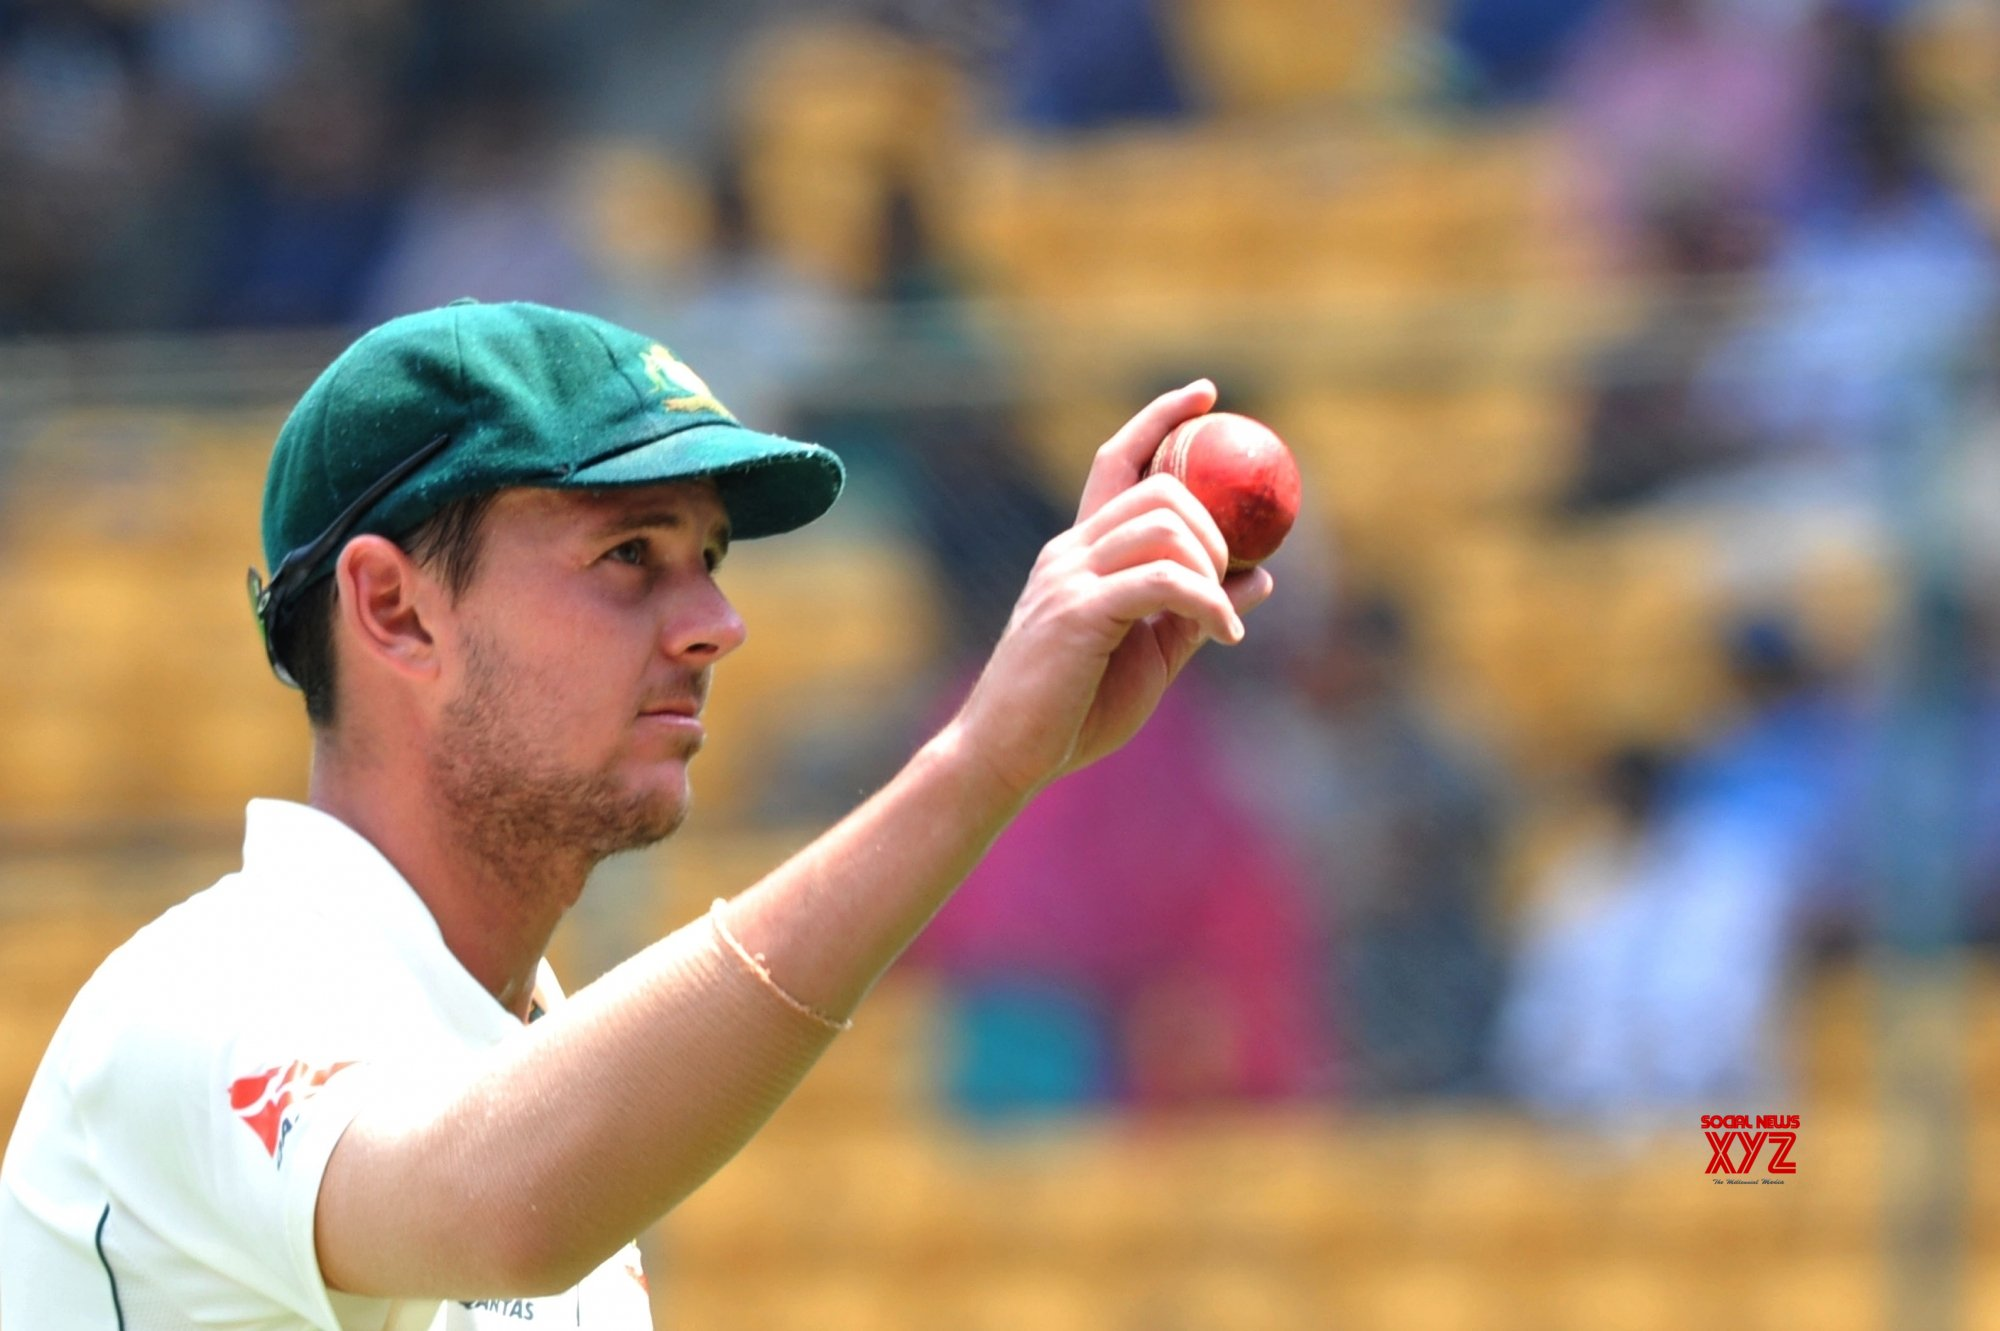 Second nature to give ball little touch up: Hazlewood on saliva ban